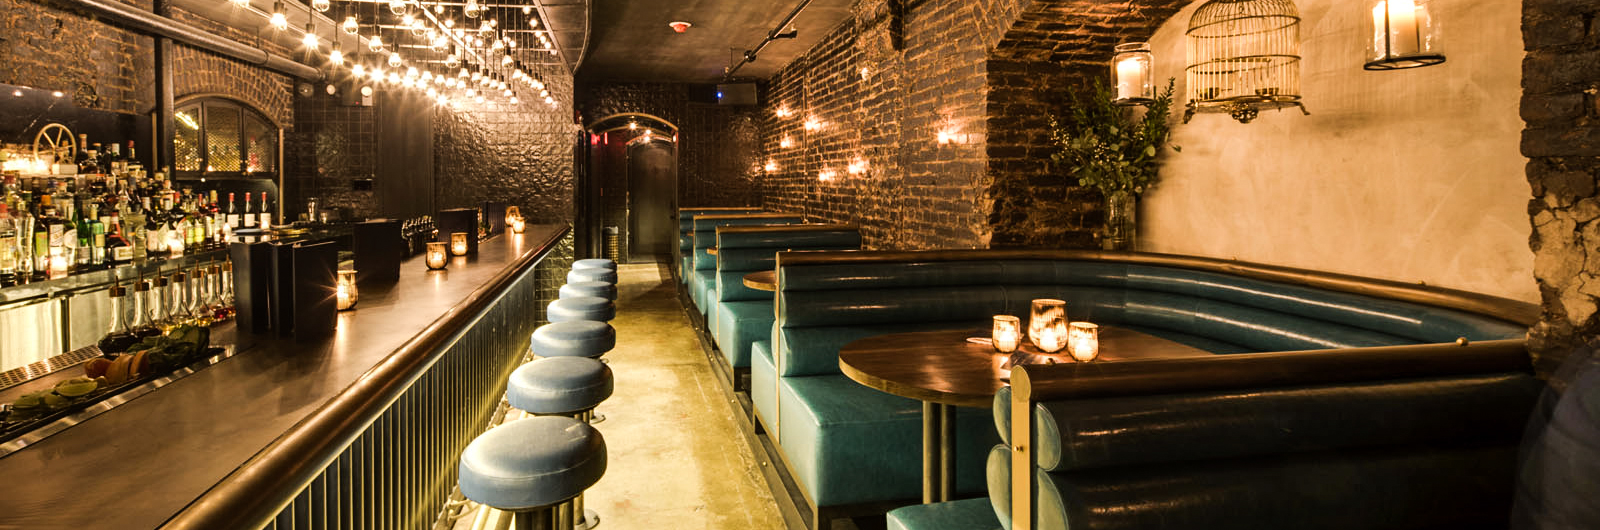 Best Bars Near Madison Square Garden, New York City | UrbanDaddy